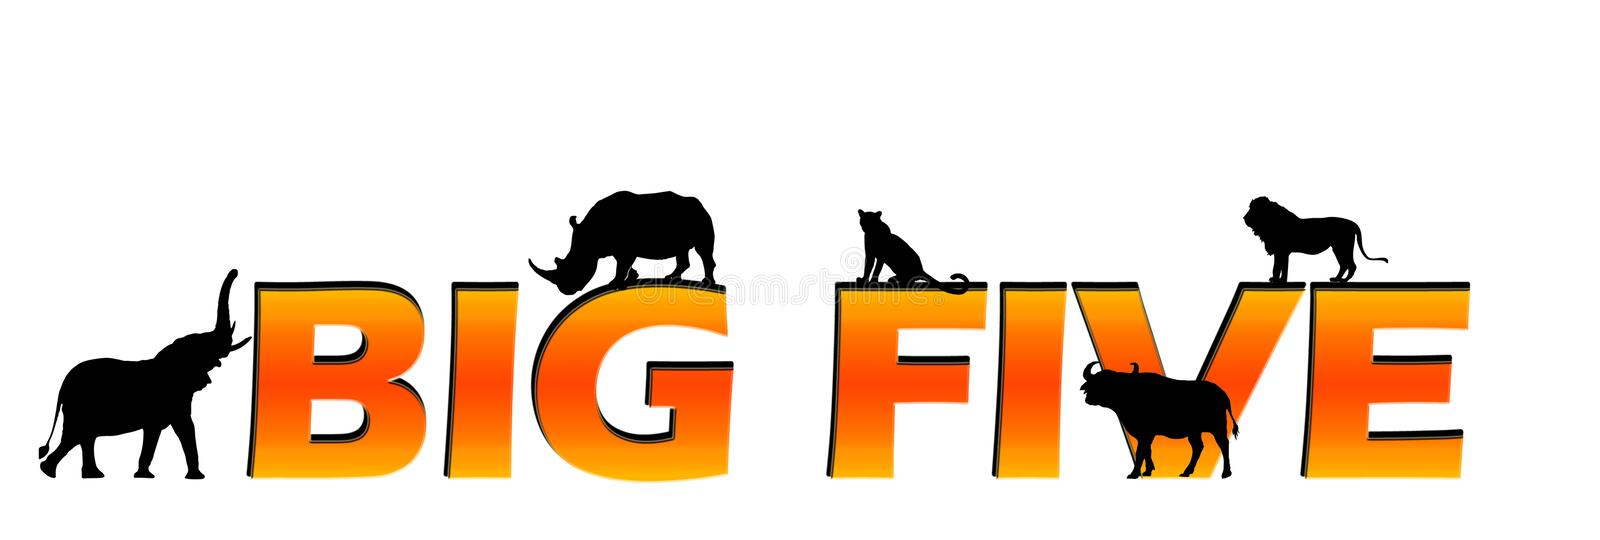 Download African's big five text stock illustration. Illustration of five - 8068836